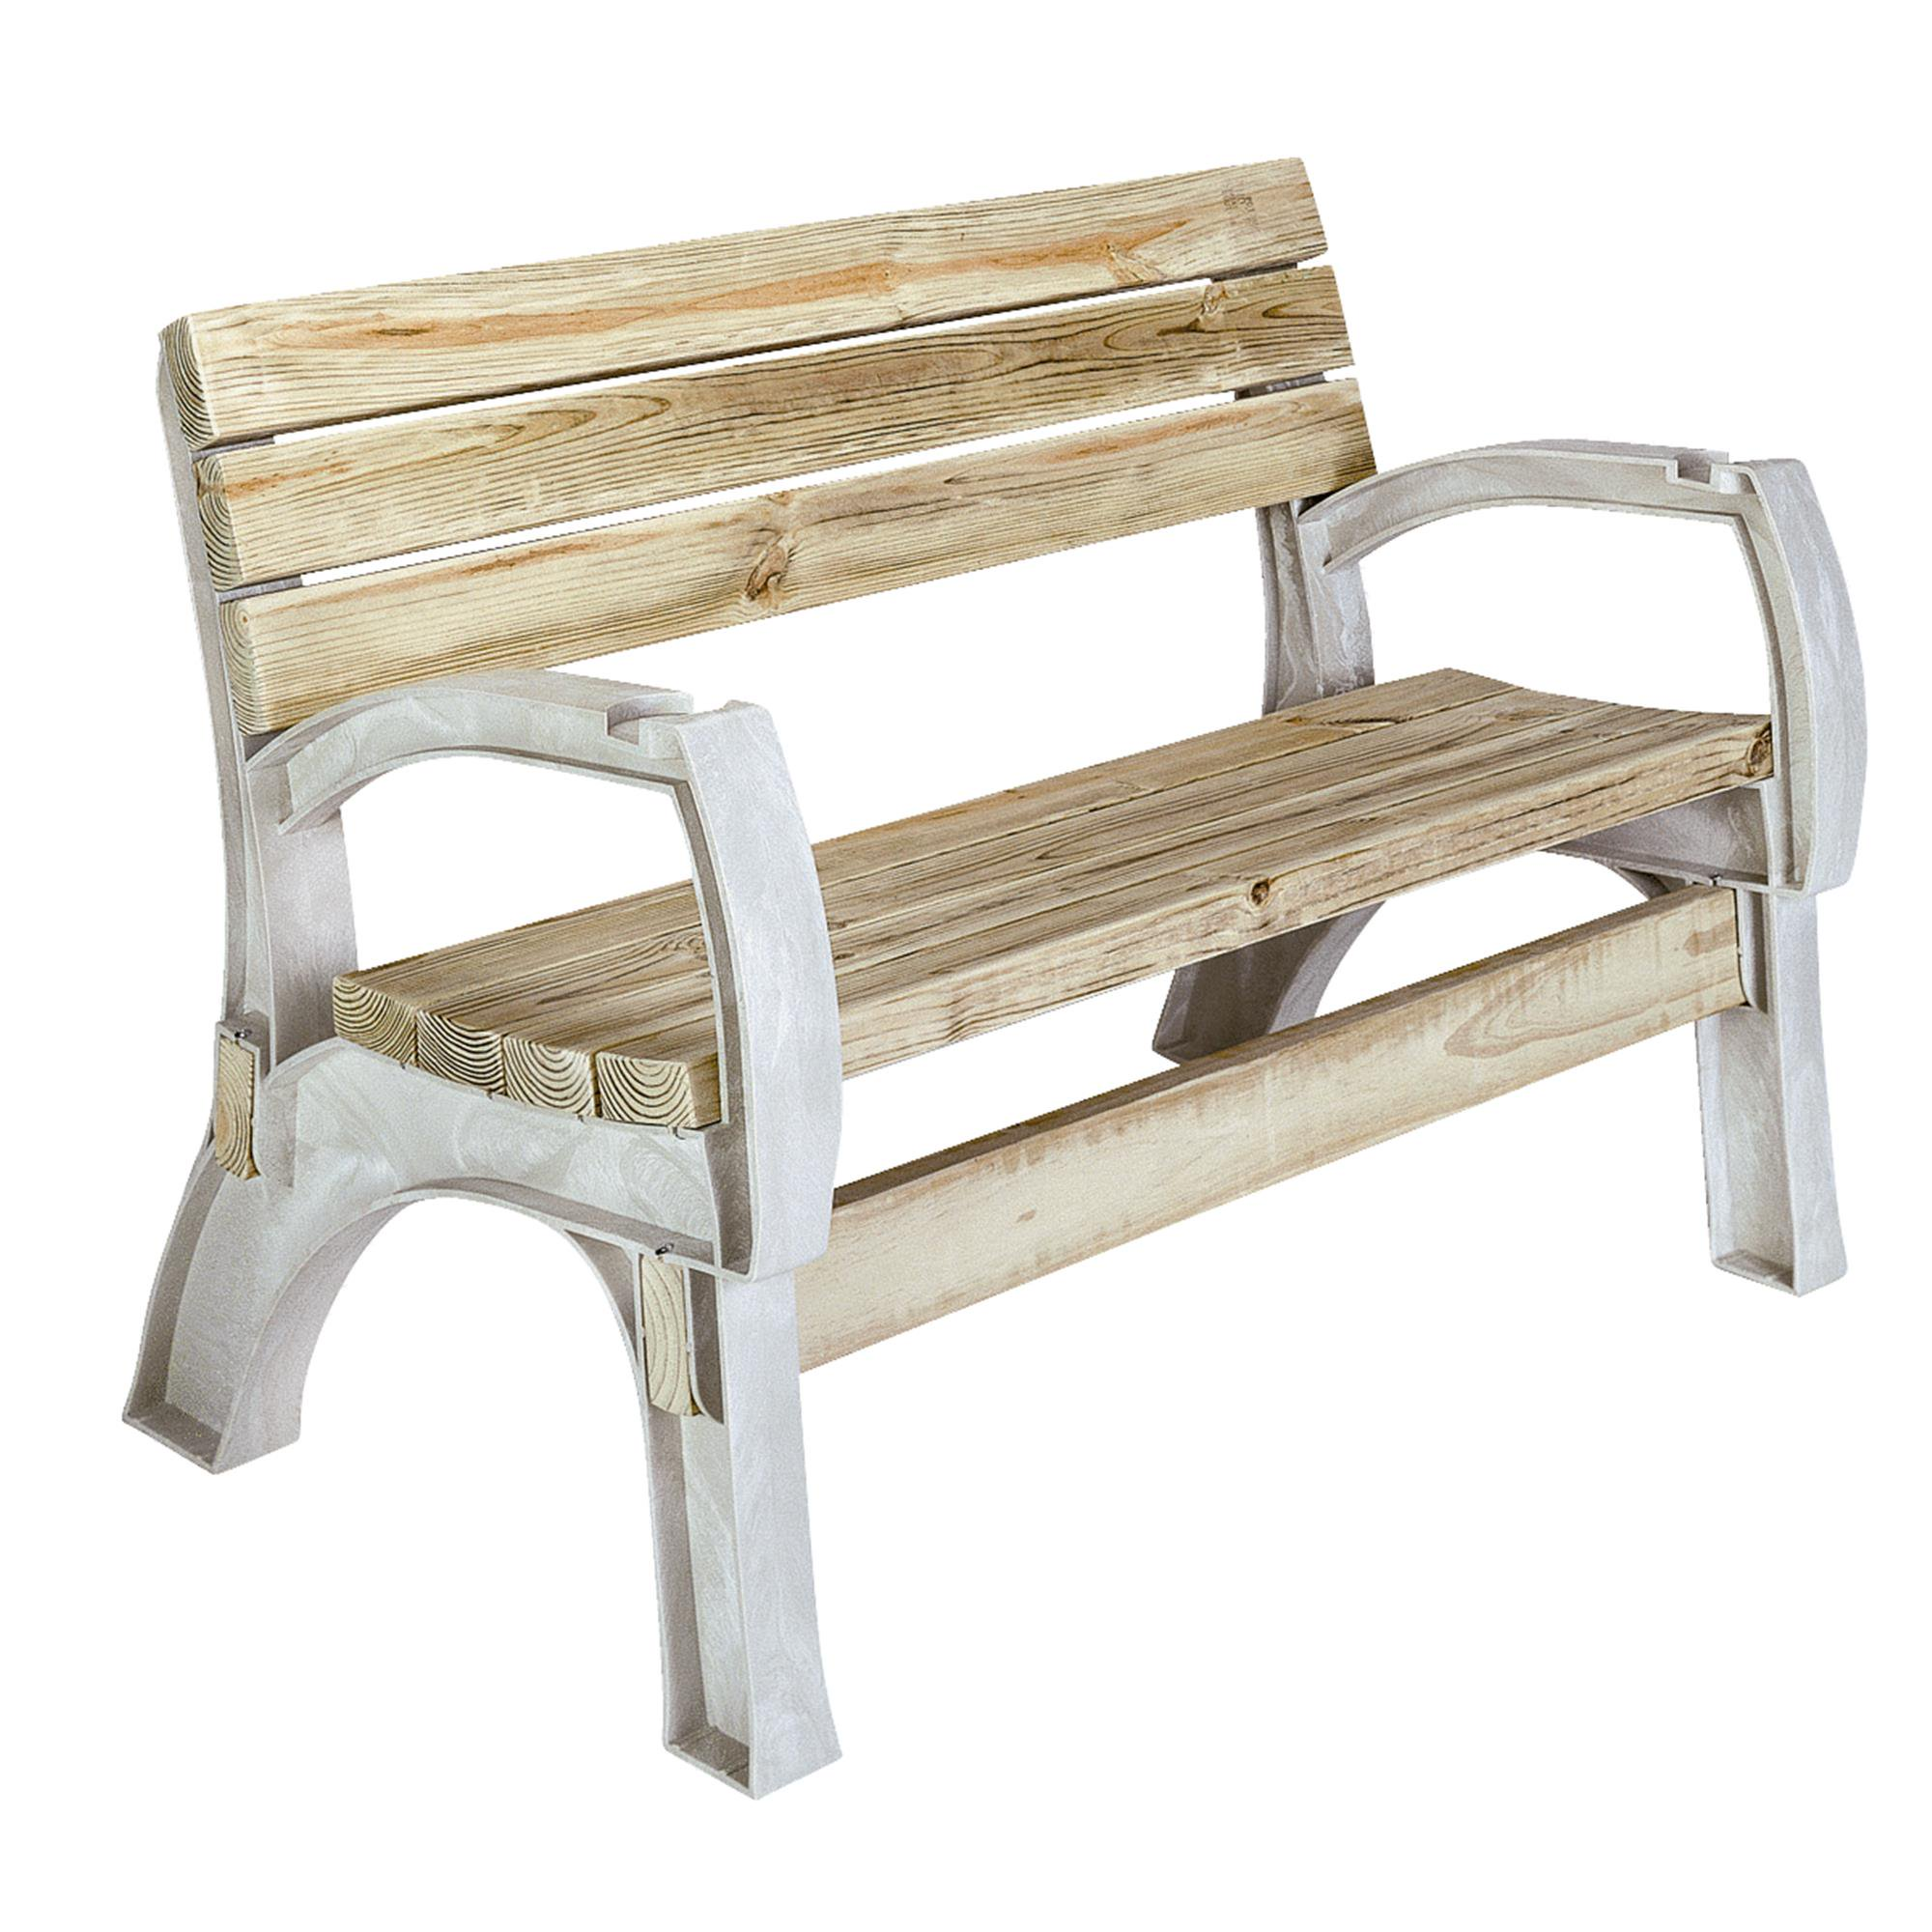 Hopkins - F3 Brands 90134 Any Size Chair Bench Kit